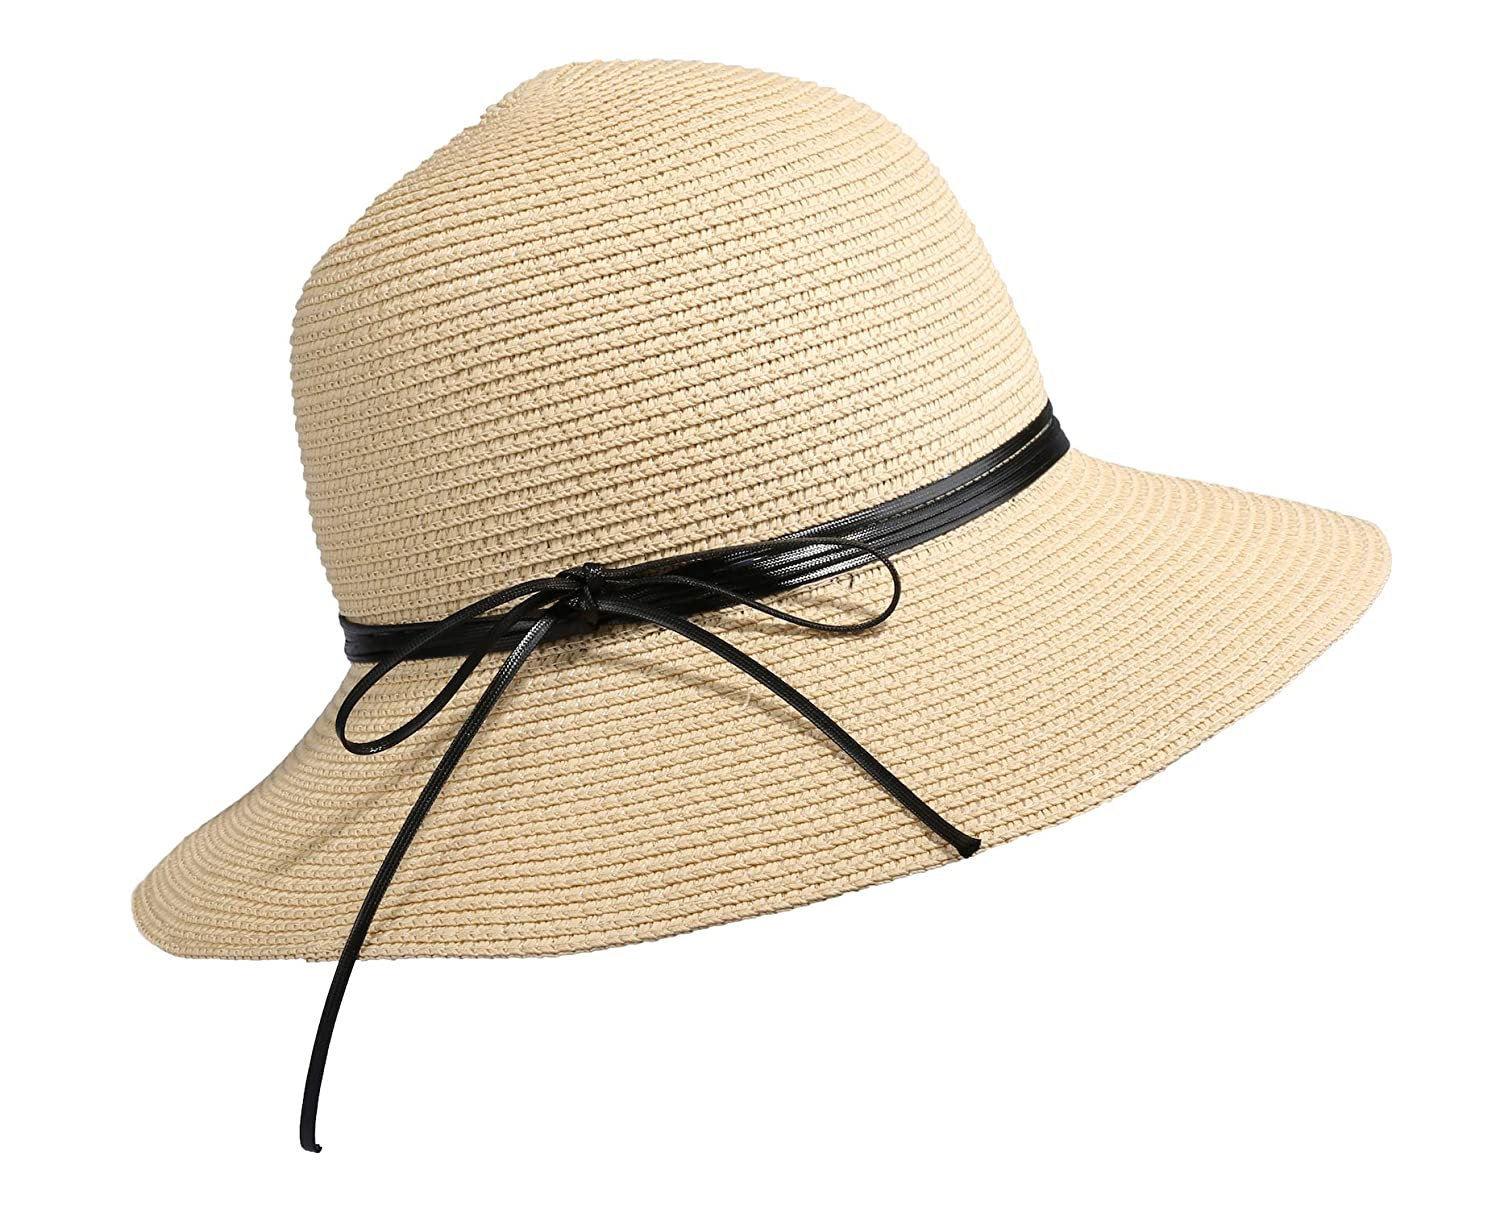 5843bbf7d9b Home Prefer Womens Straw Sun Hat UPF50+ Wide Brim Floppy Hat Summer Beach  Cap (B-Beige) at Amazon Women s Clothing store